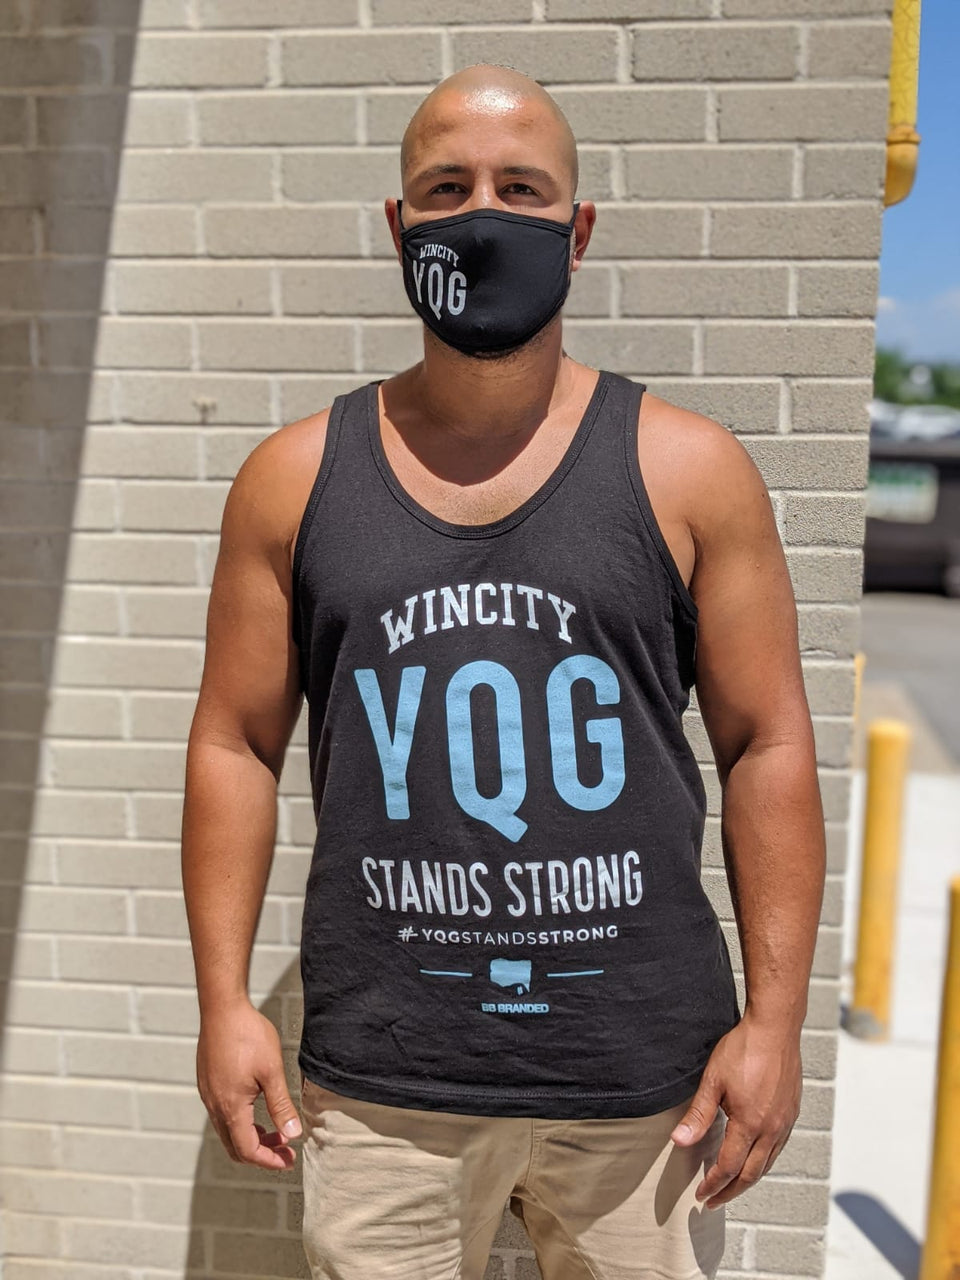 WIN CITY #YQGSTANDSSTRONG TANK TOP